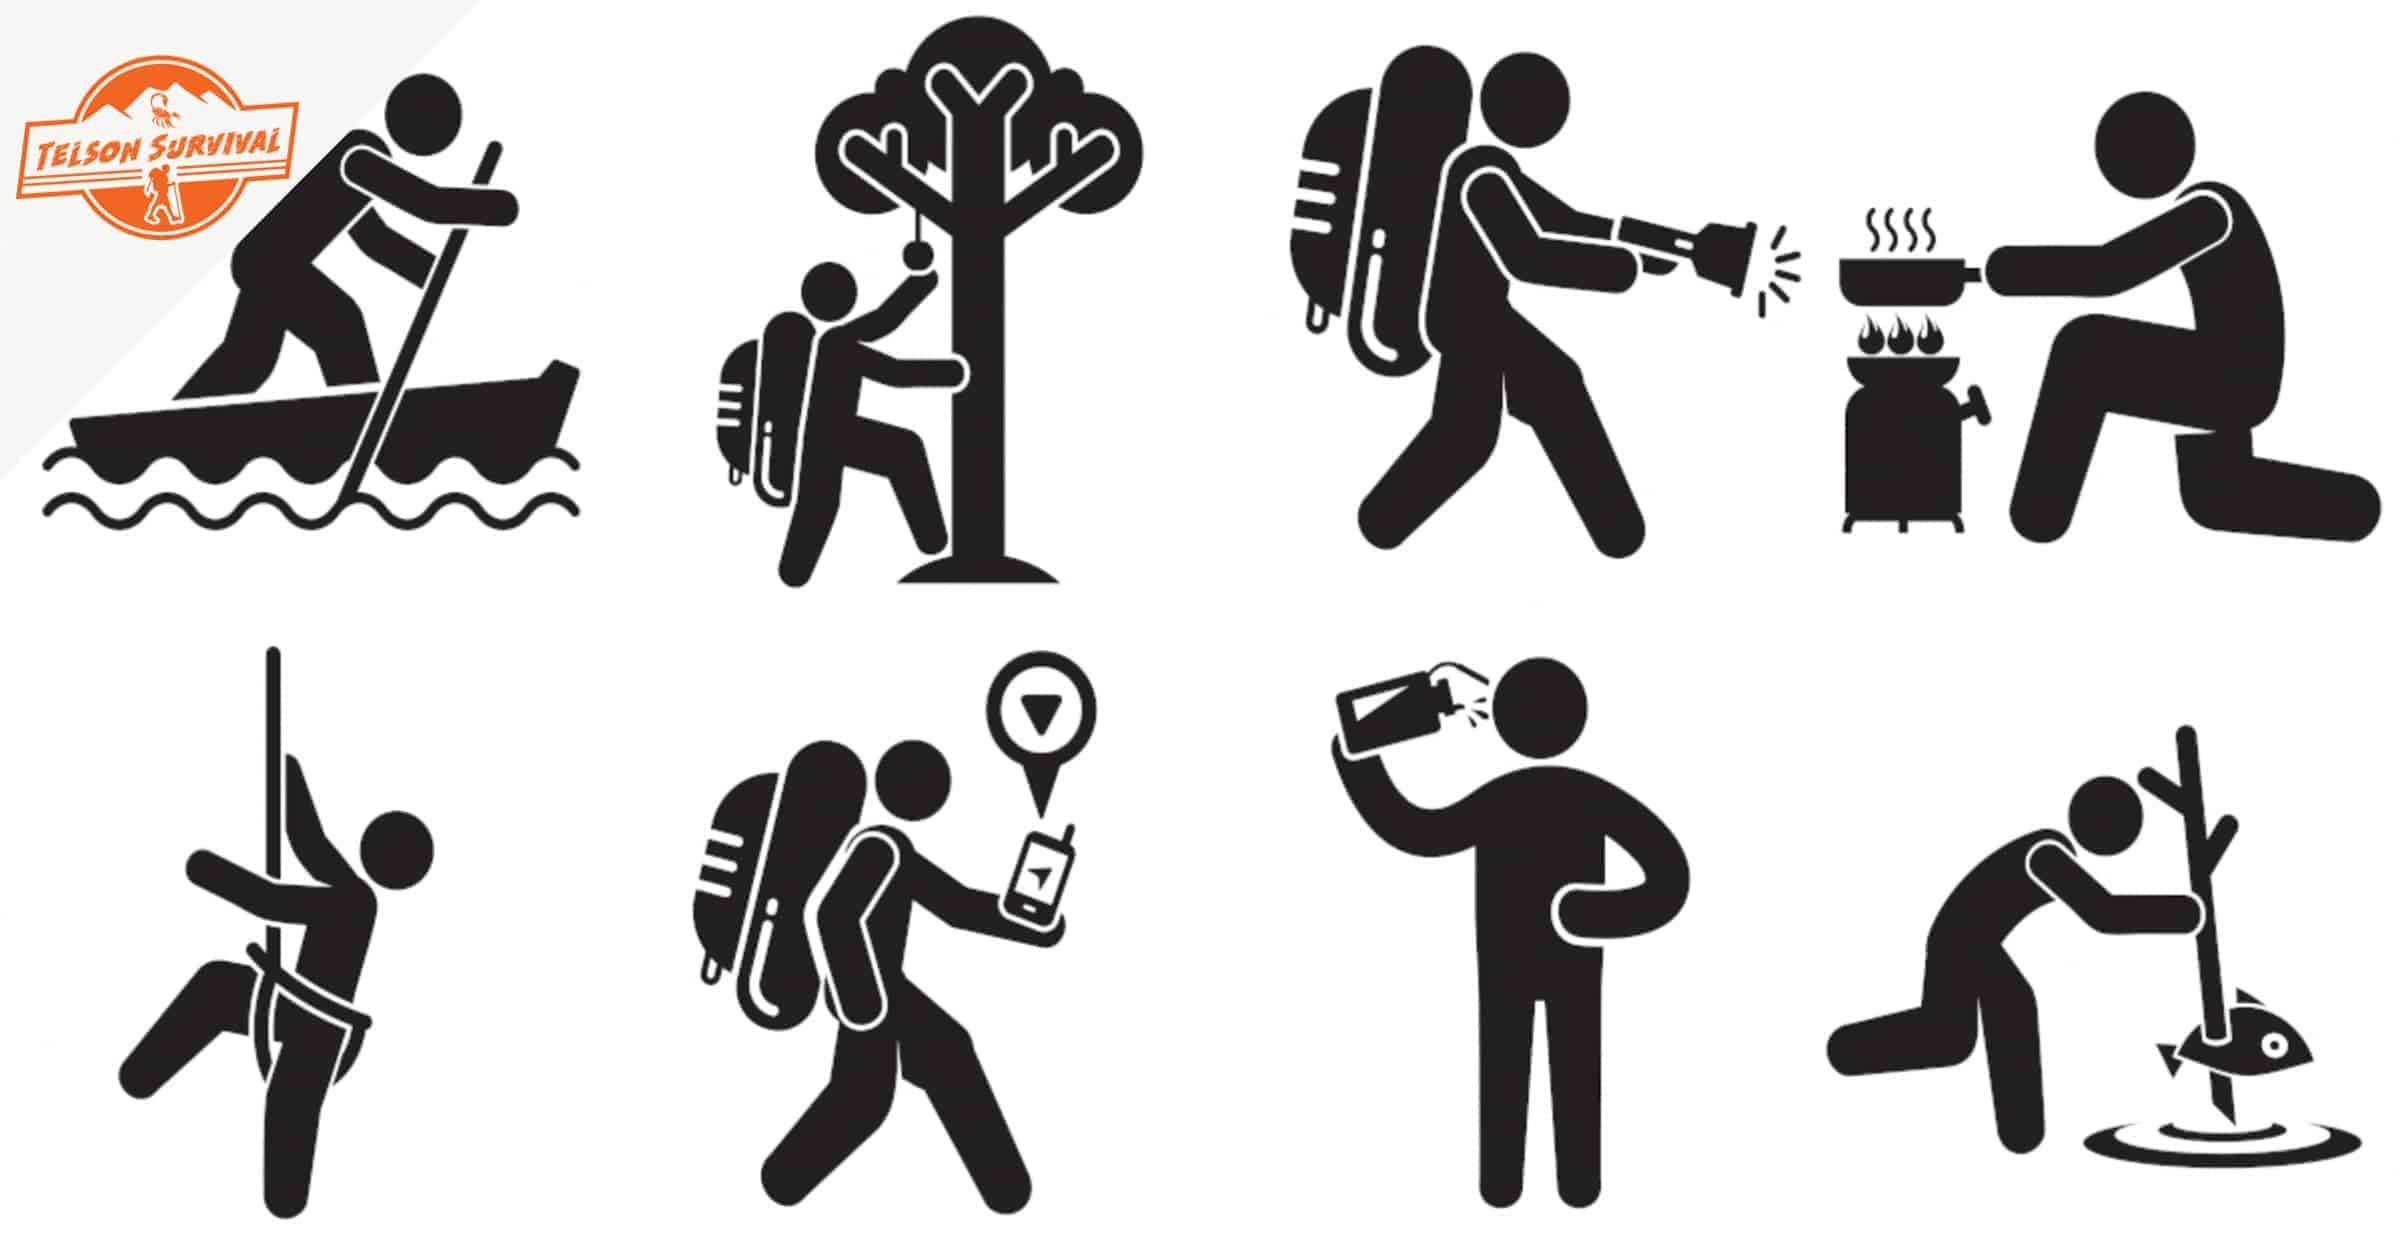 Illustration of various basic survival skills